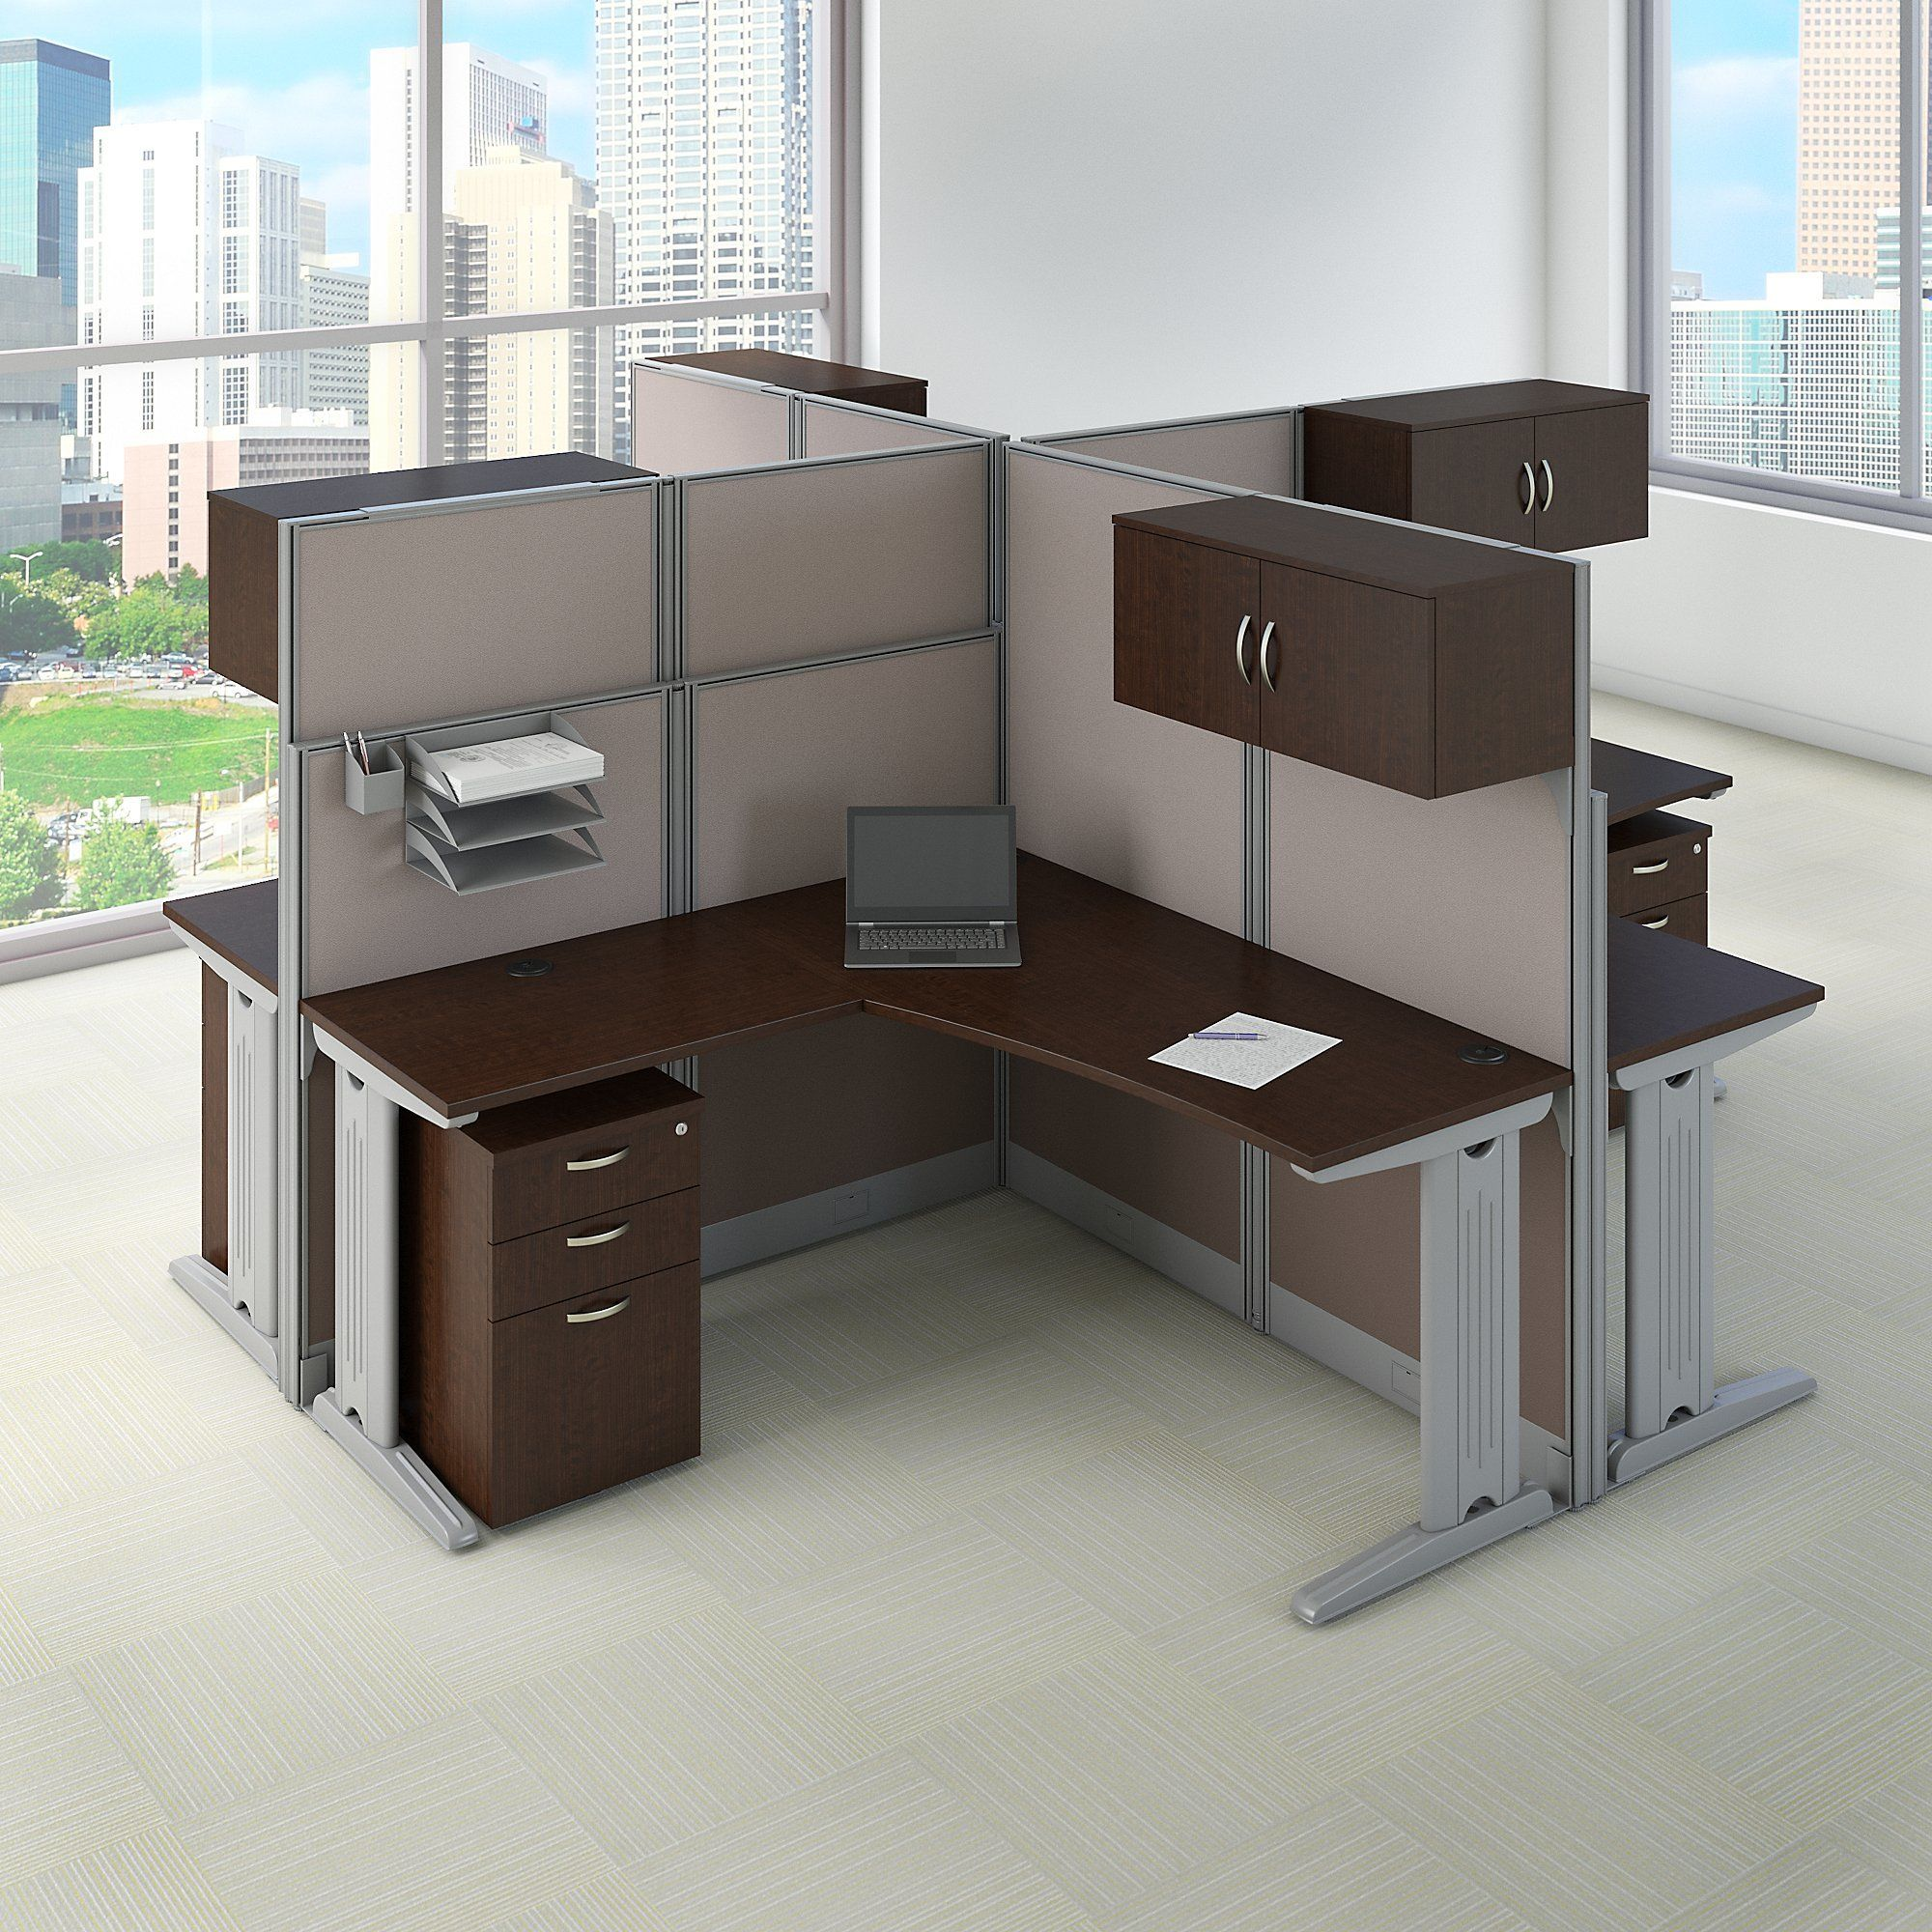 Pin On Stylish Cubicles And Office Workstations